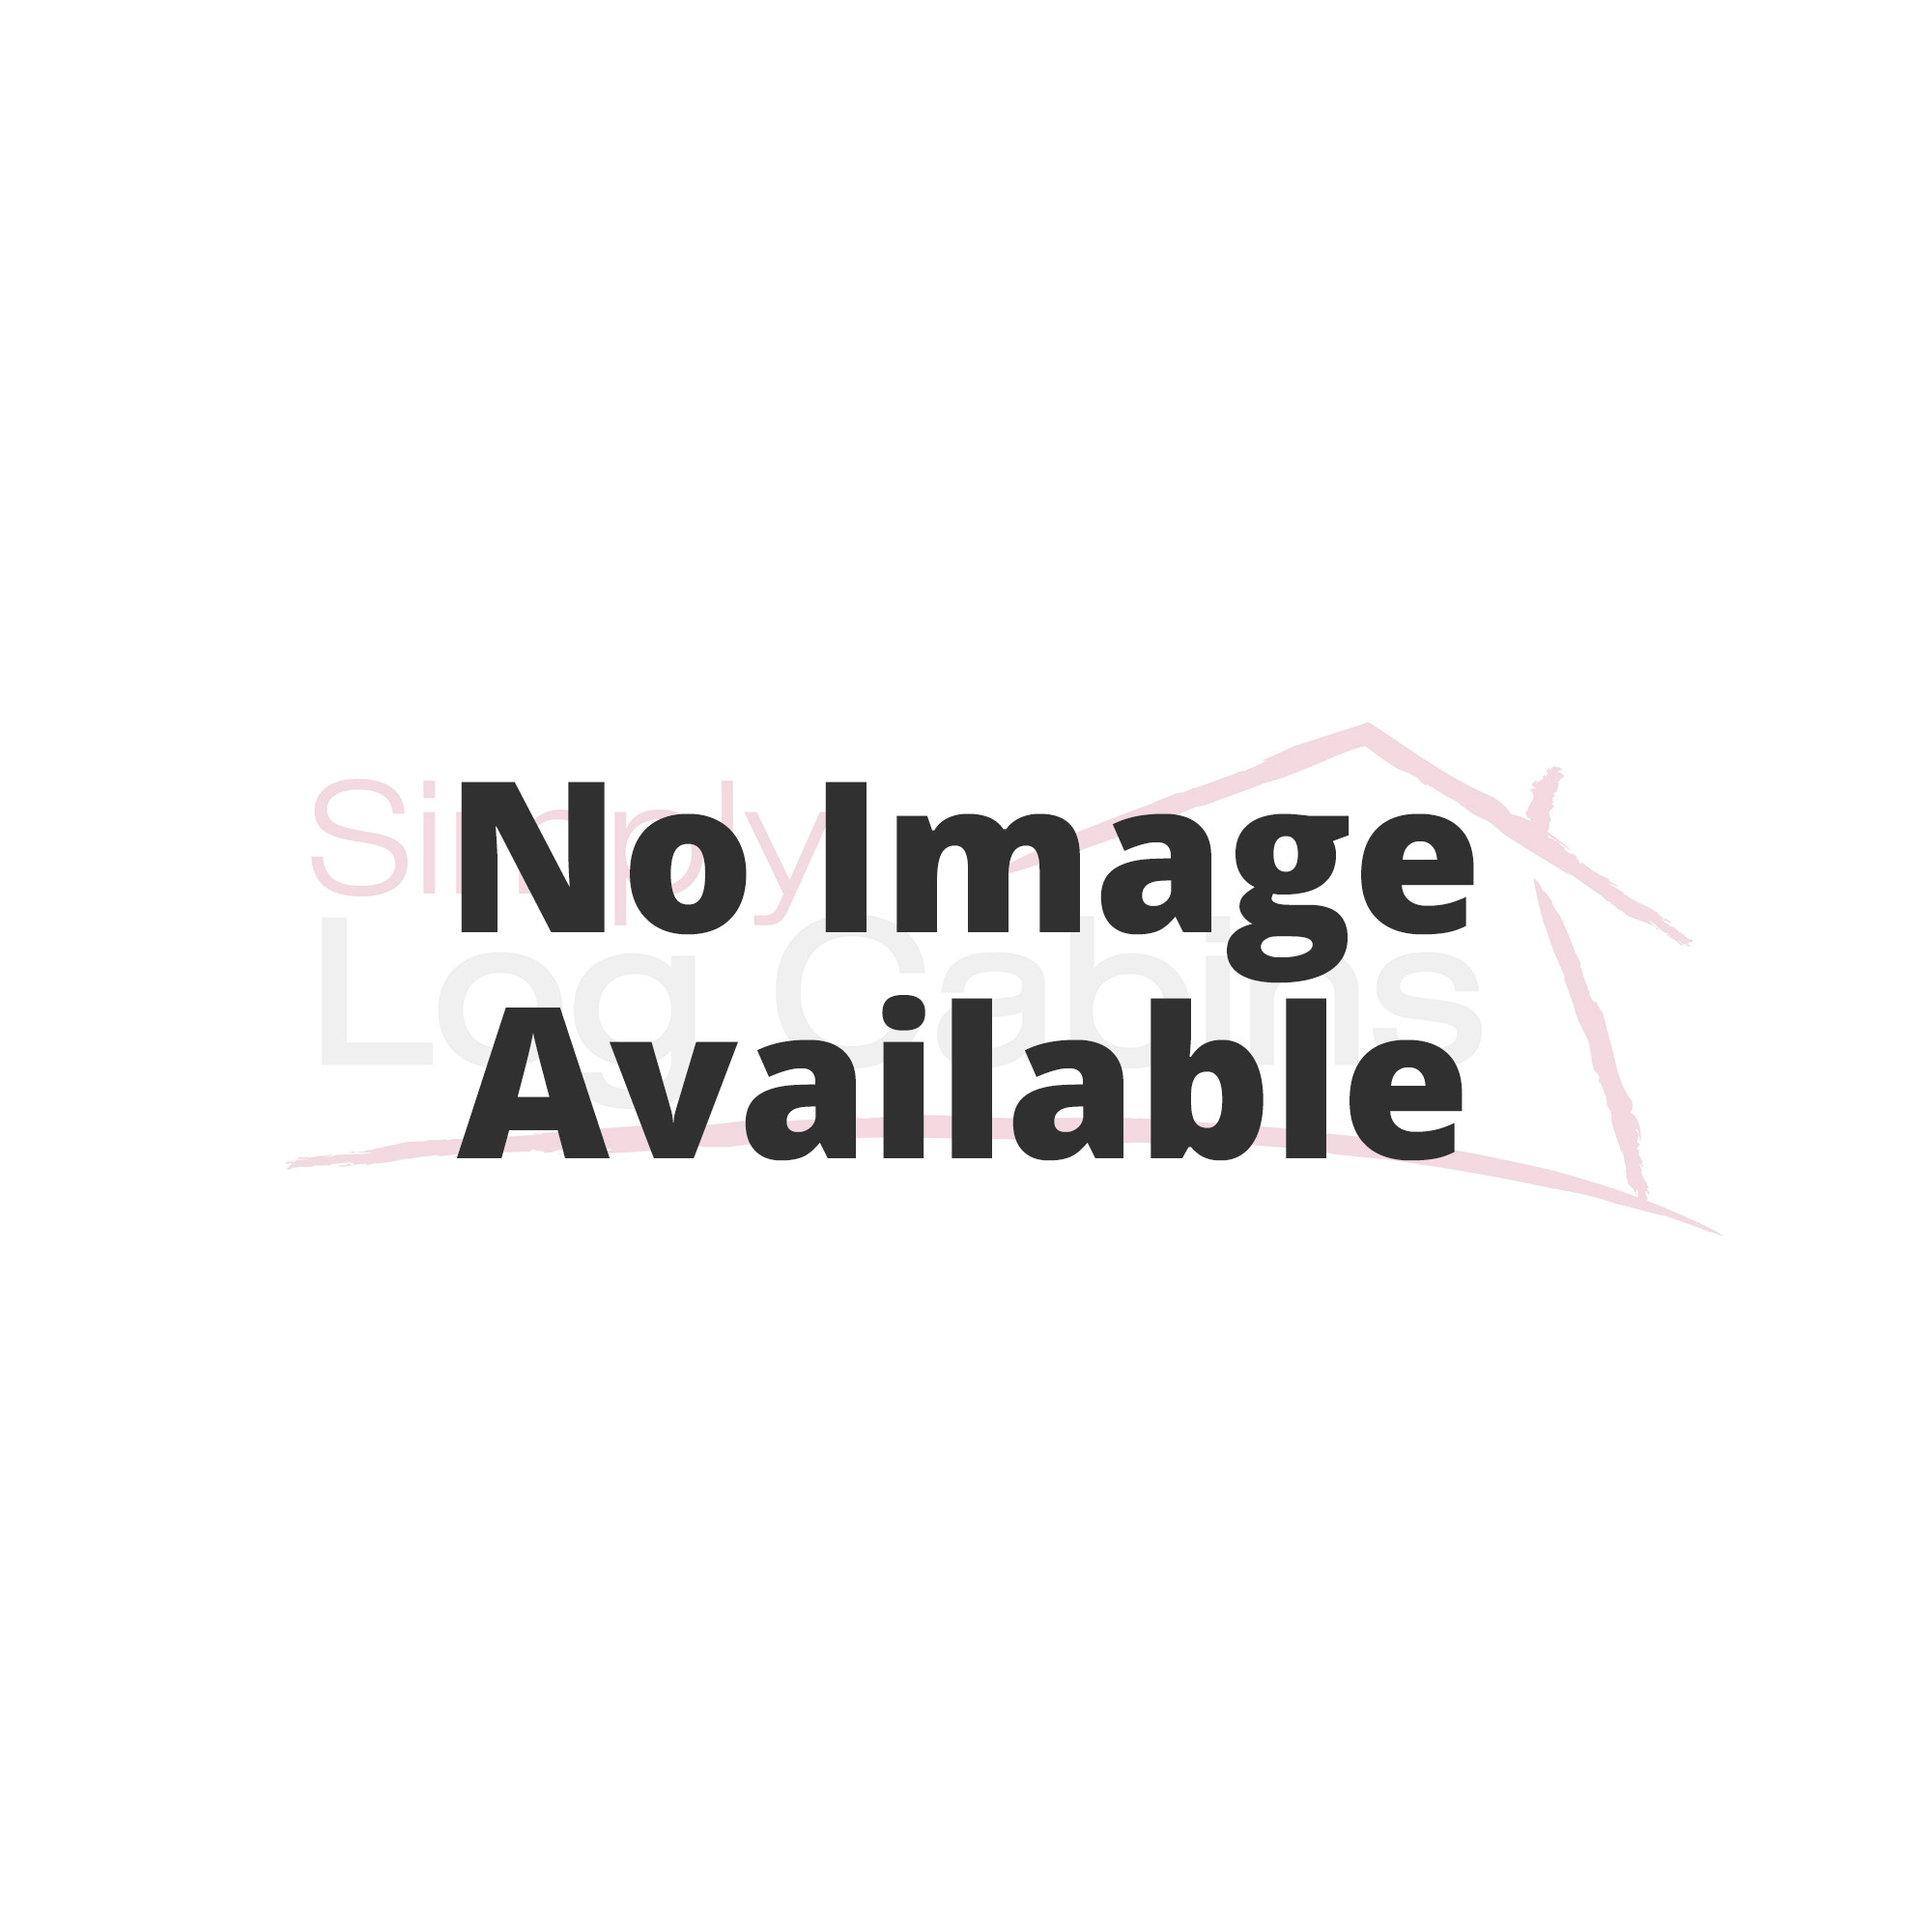 Gudrum karl 2 carport with optional storage for Carport with storage